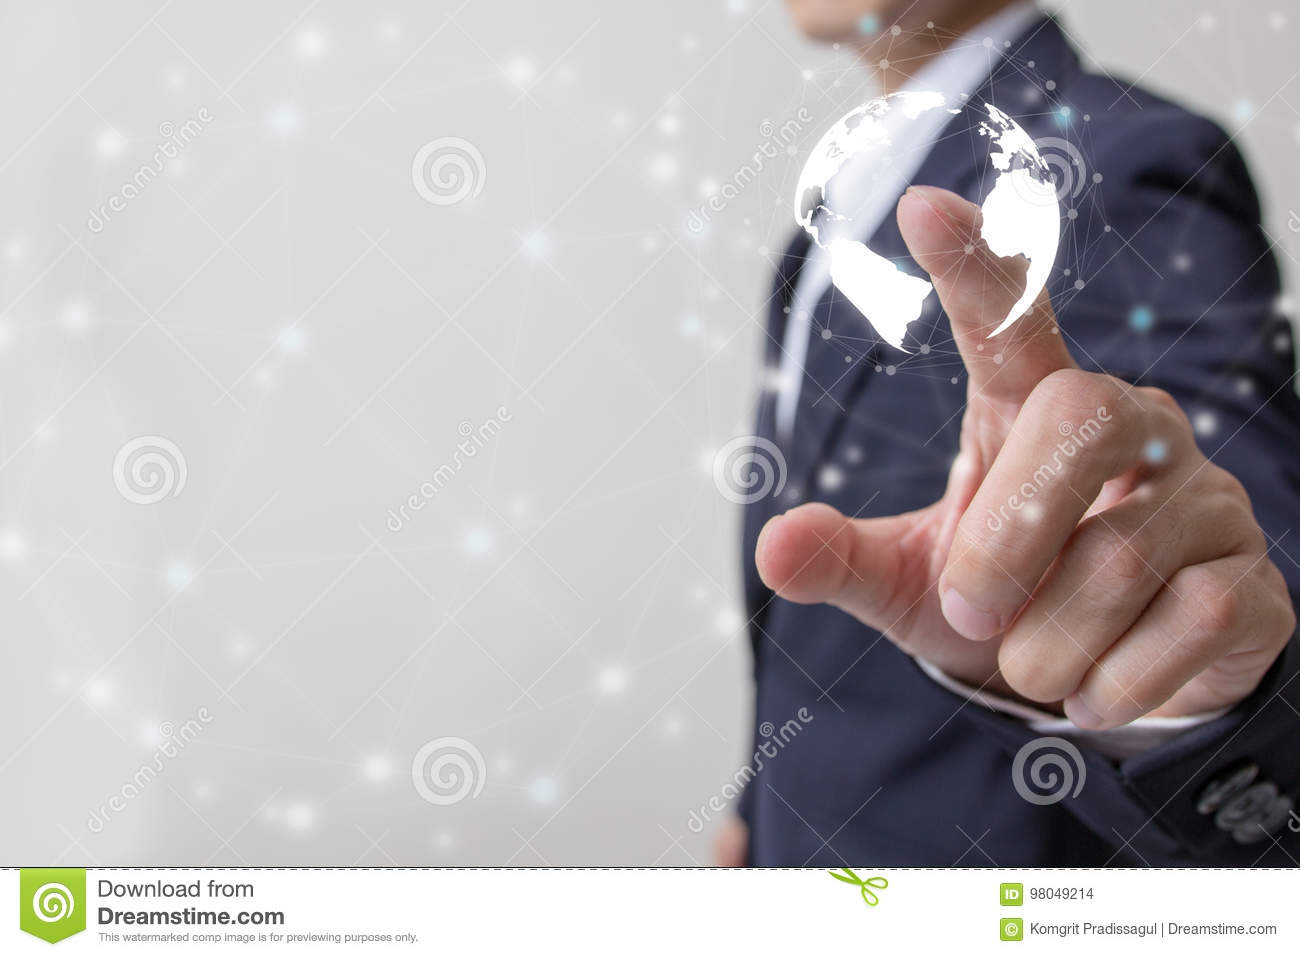 Future of financial business concept,Businessman touching increasing graph with finance symbols.